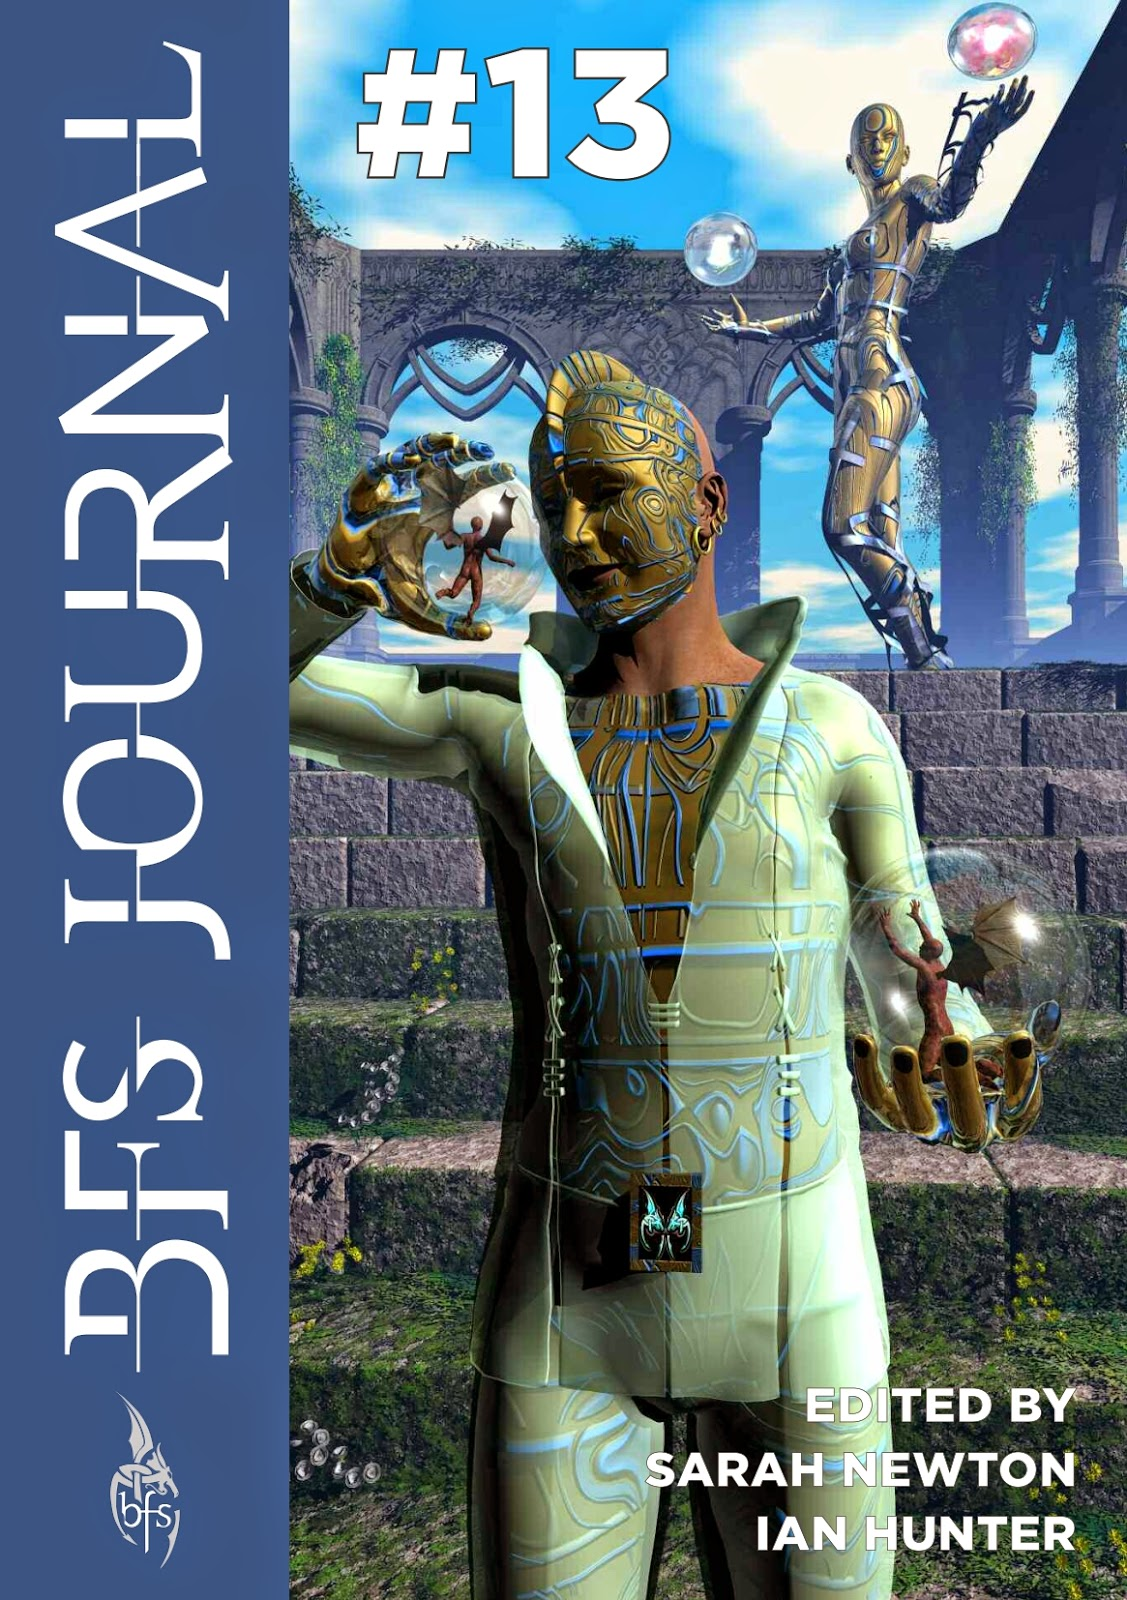 The Apothecary's Tale  was published in the BFS Journal #13